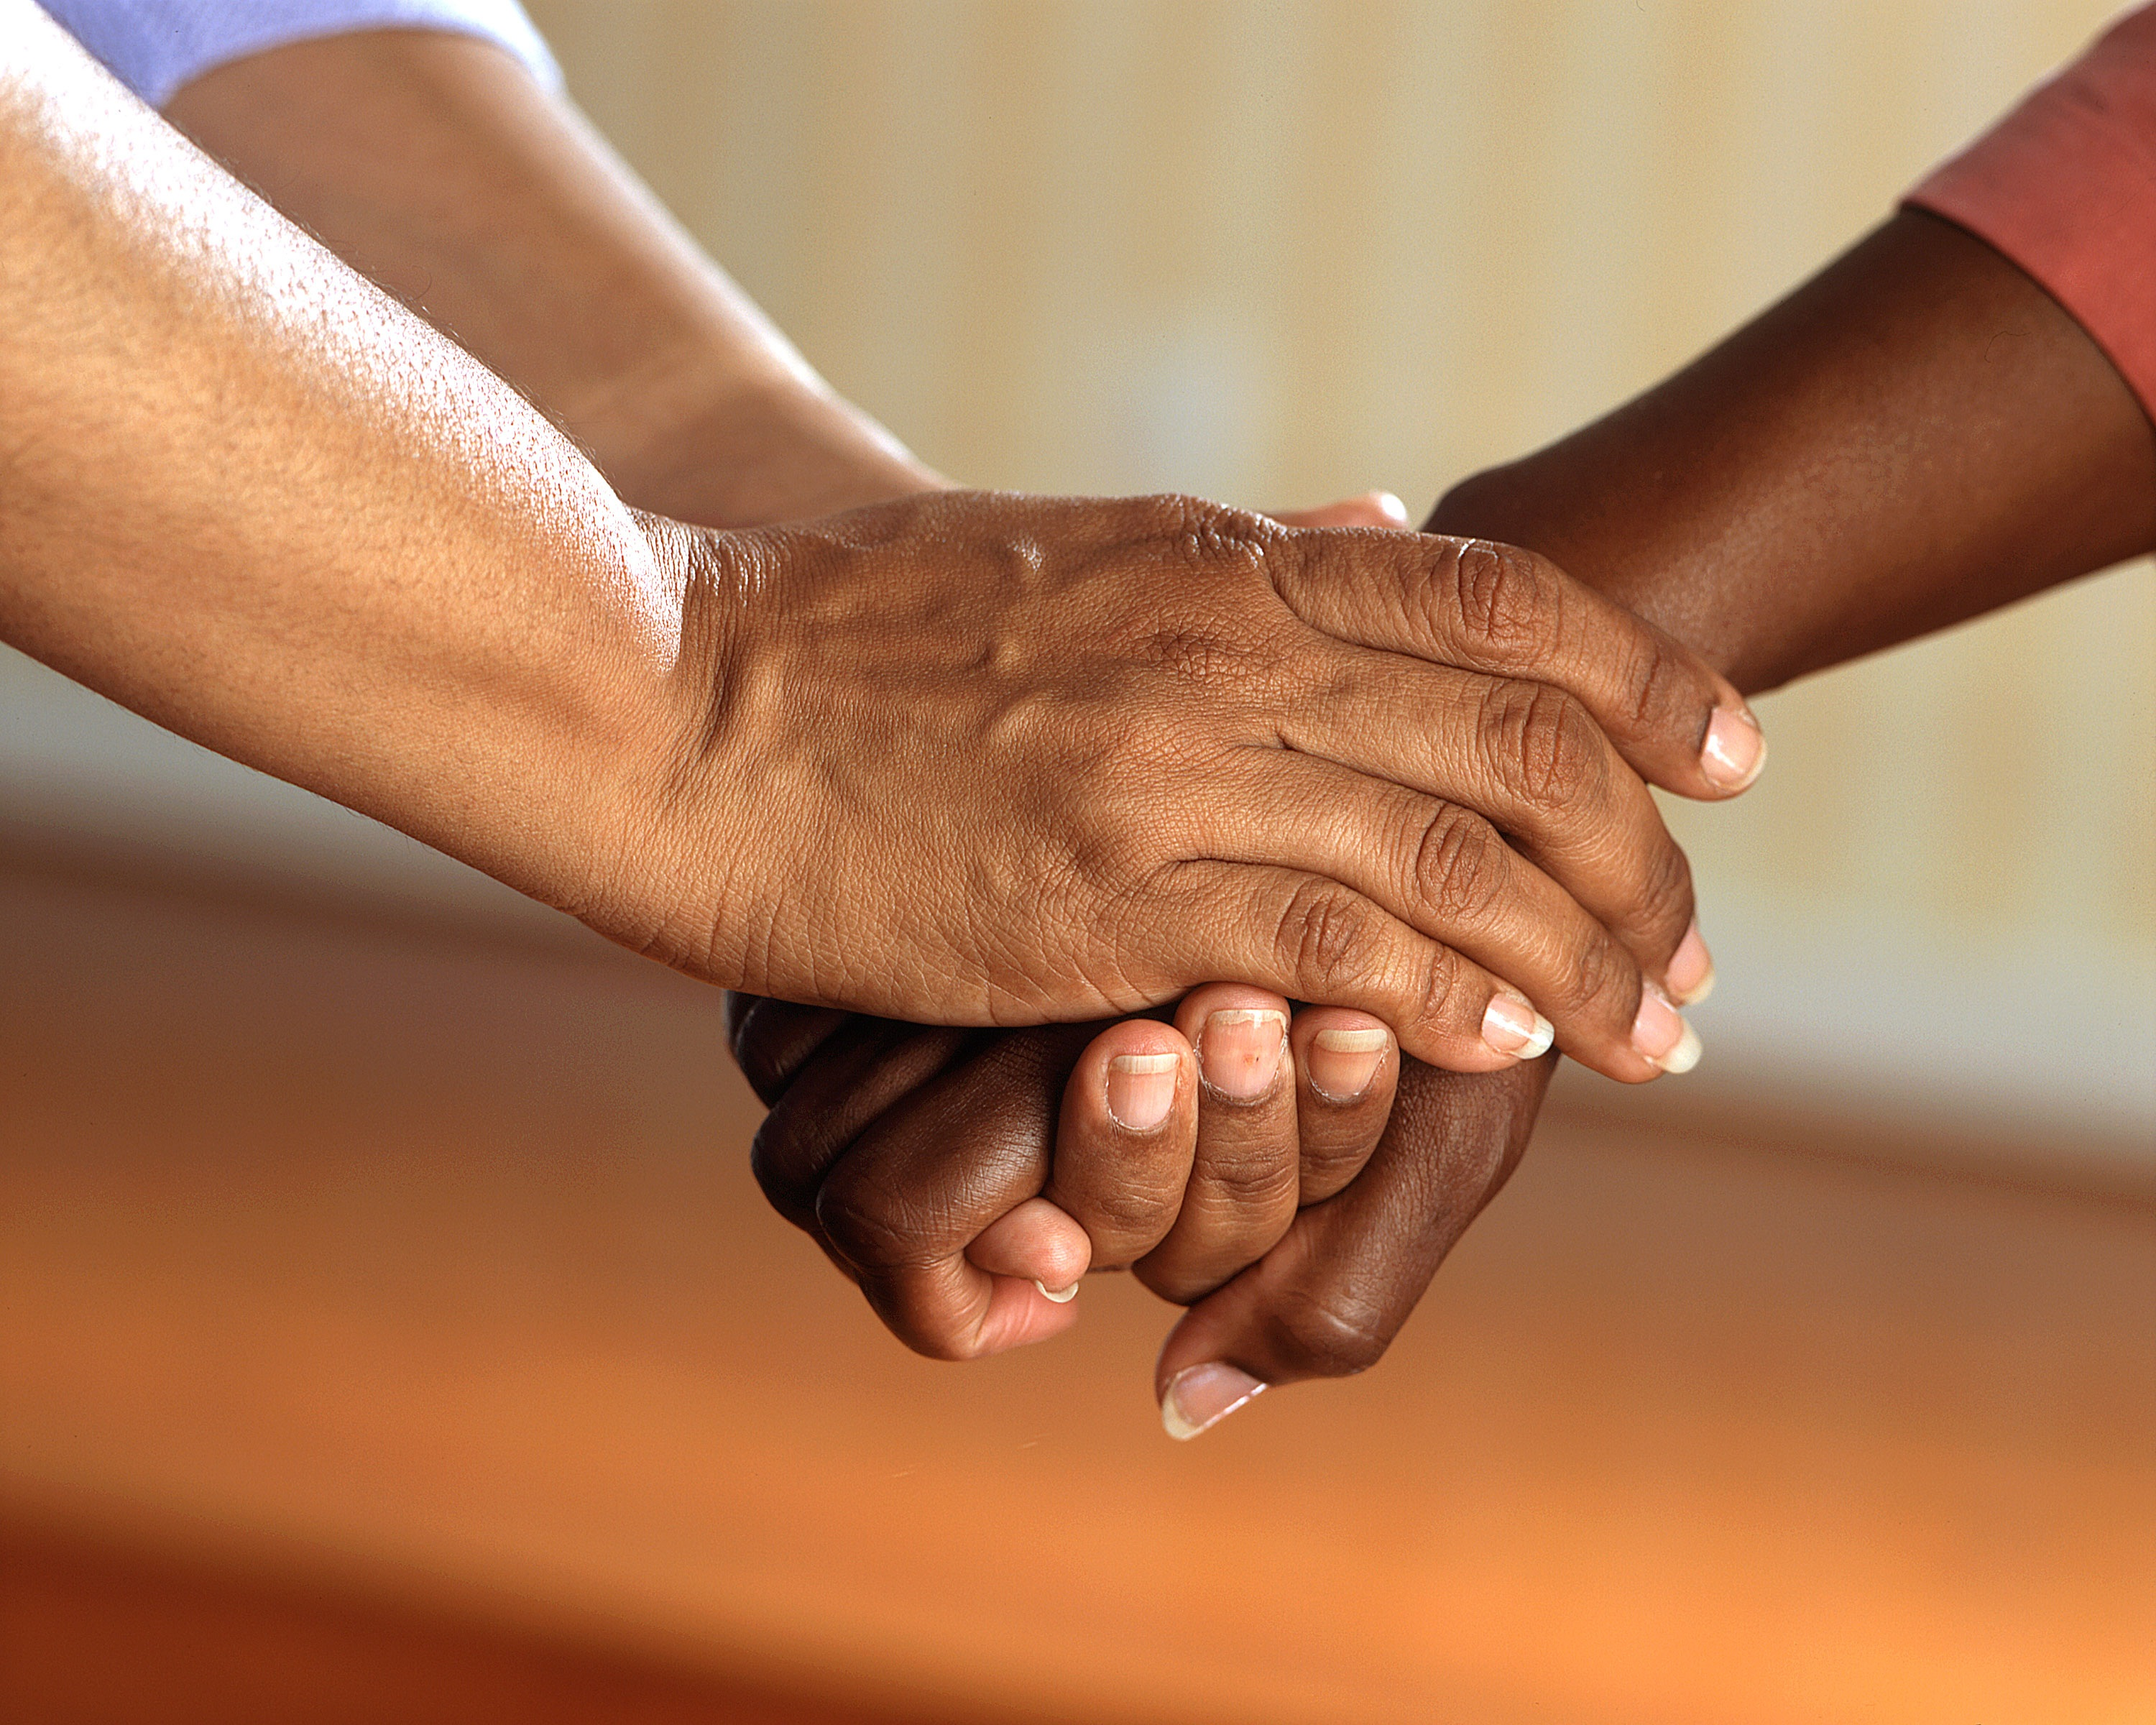 https://static.pexels.com/photos/45842/clasped-hands-comfort-hands-people-45842.jpeg